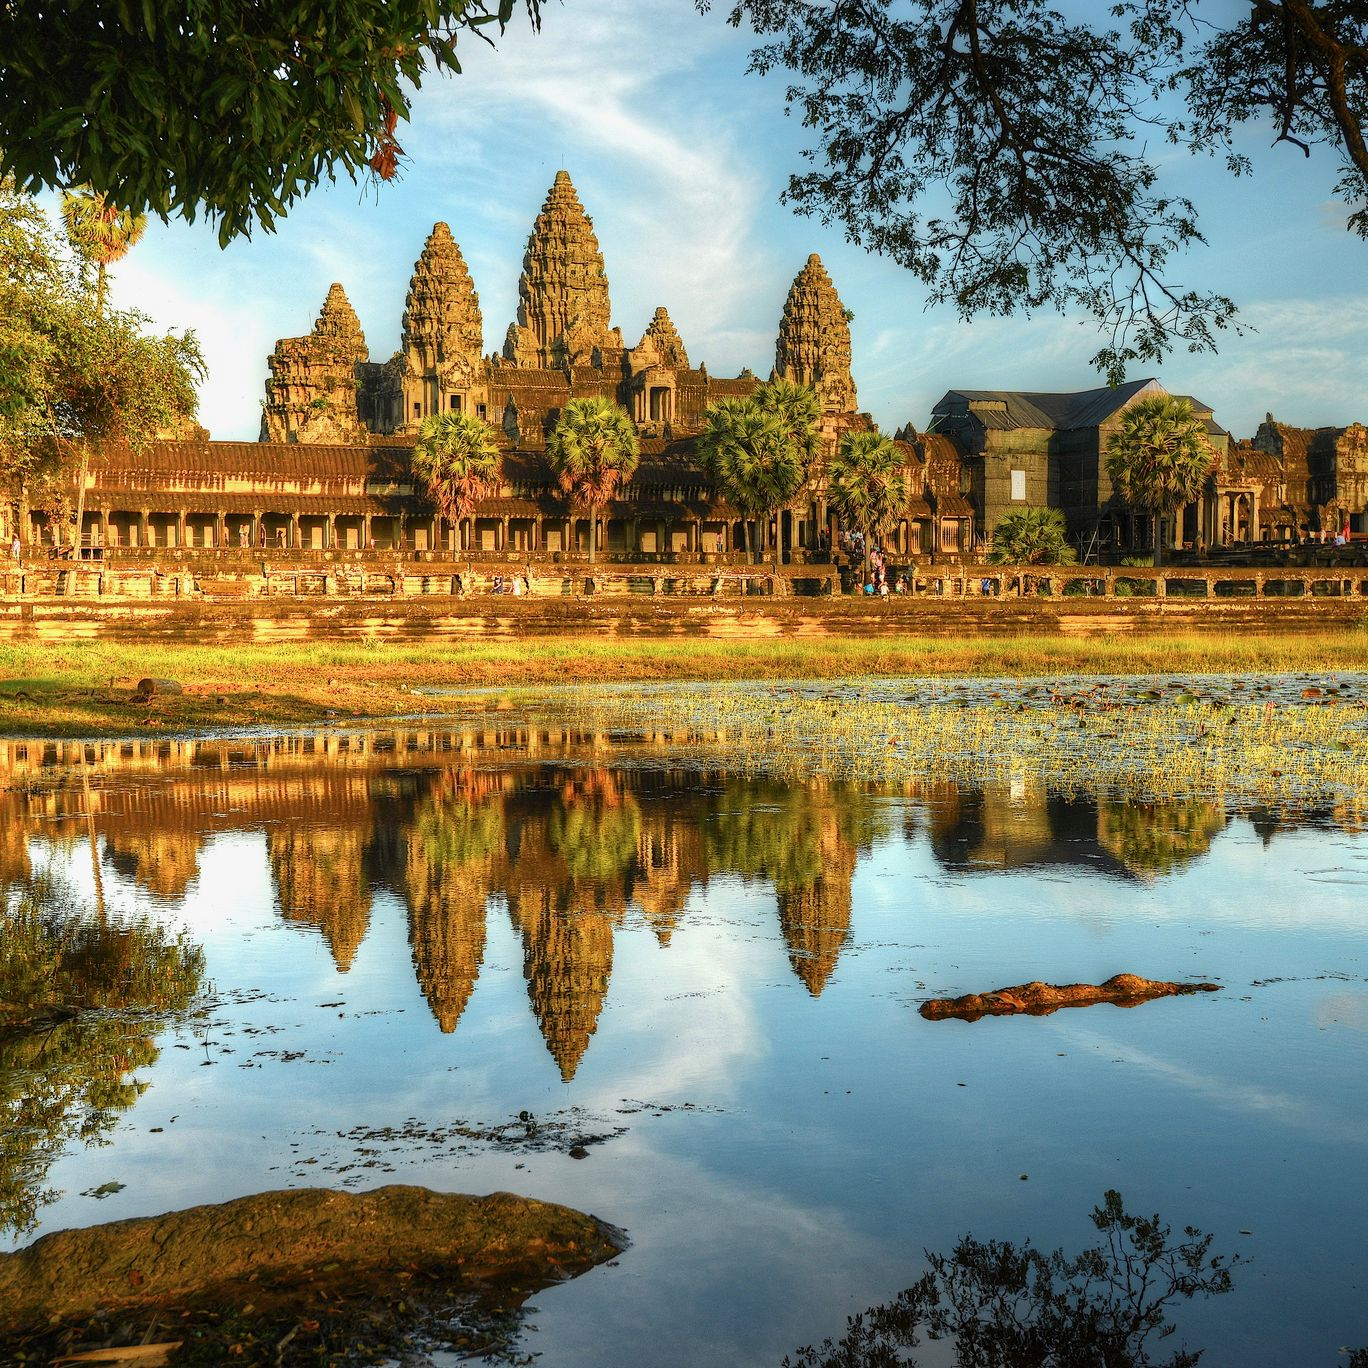 Honeymoon Destinations Rocky Mountains: Cambodia, Angkor Wat, Scooters